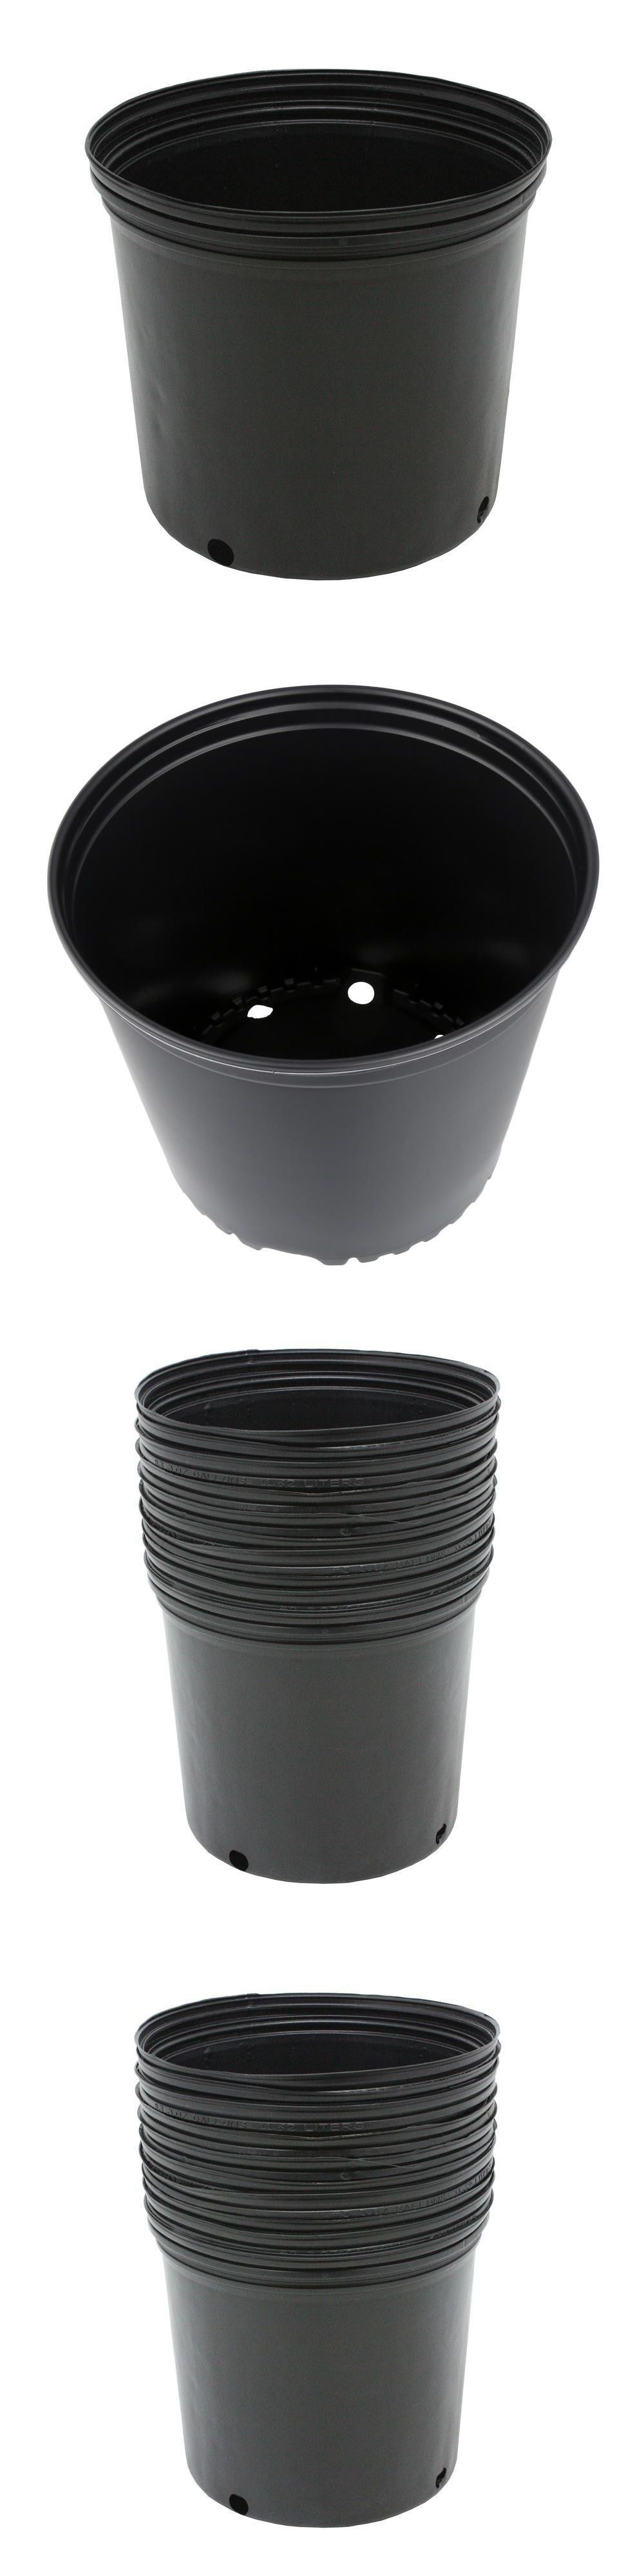 Baskets Pots And Window Boxes 20518 10 Pack 3 Gallon Plastic Nursery Pots Garden Flower Plant Outdoor Plastic Nursery Pots Baskets Pots Flower Garden Plants